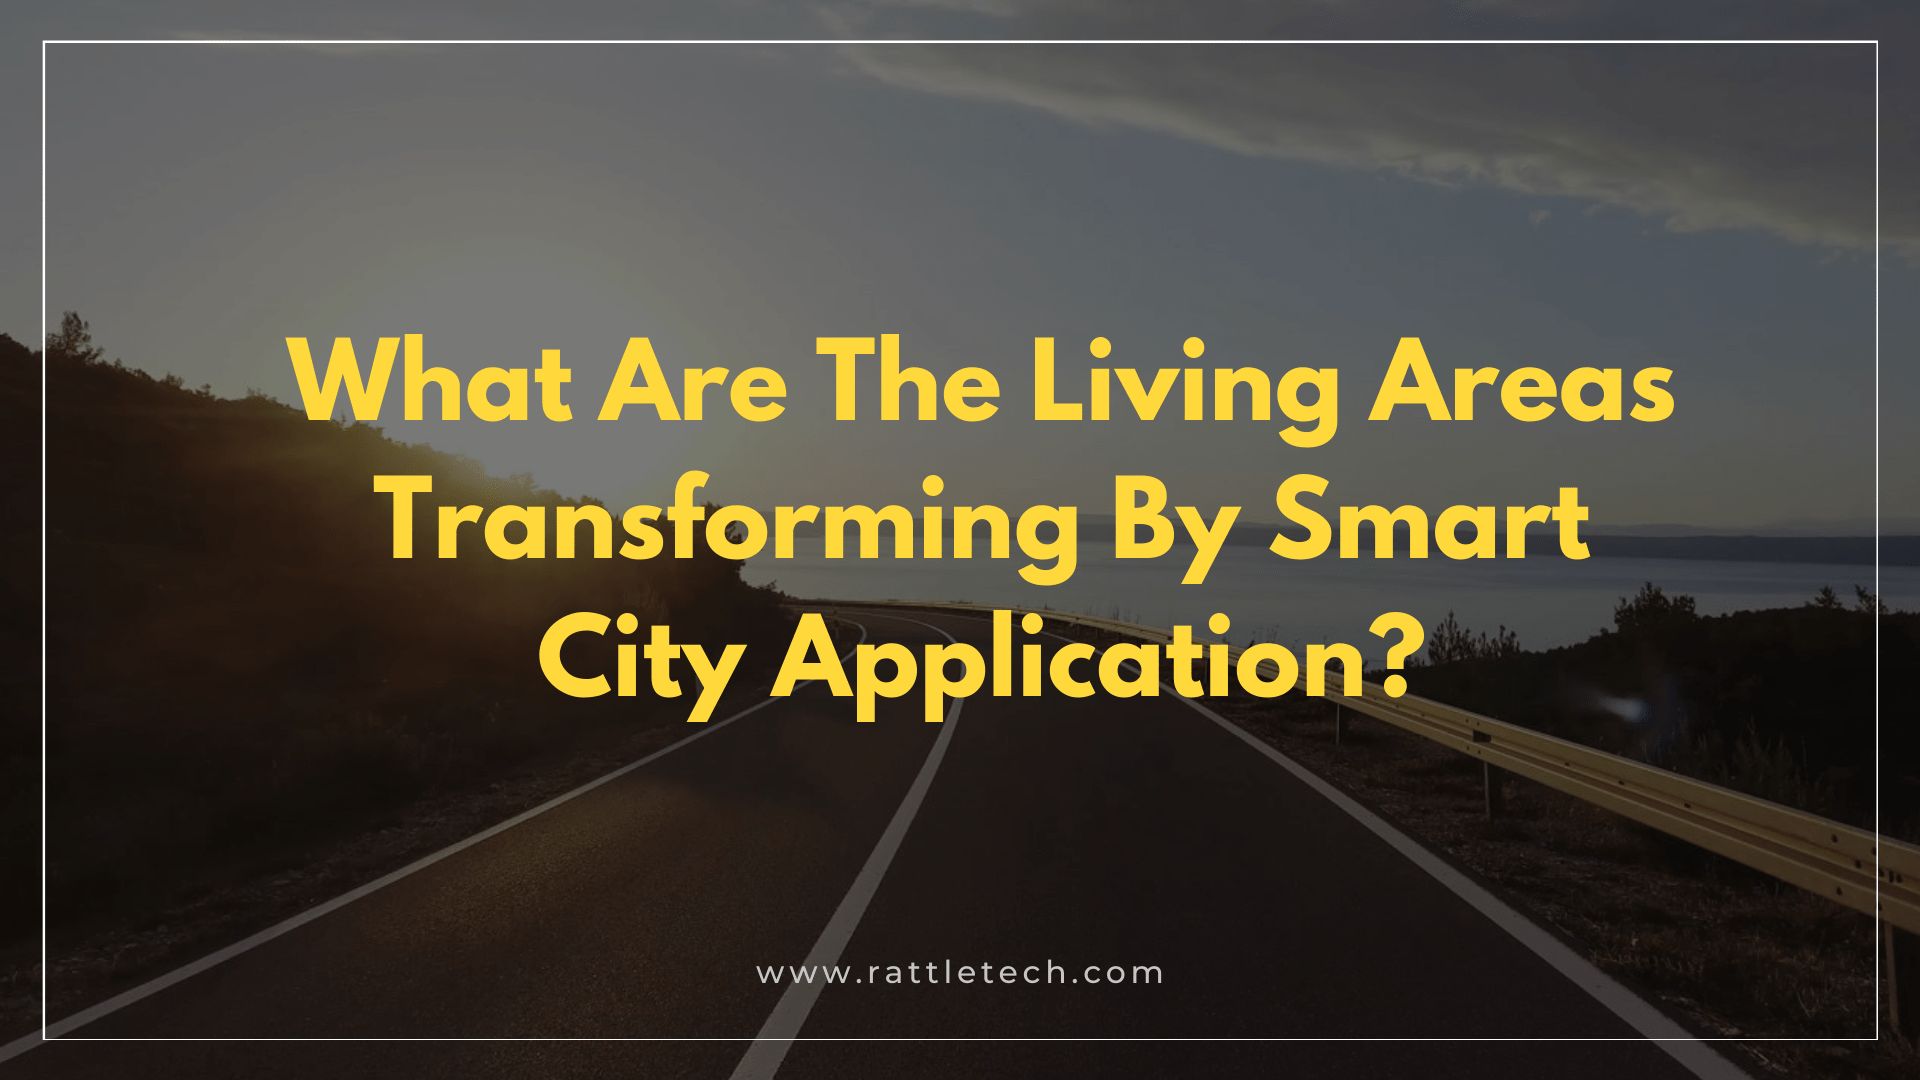 What Are The Living Areas Transforming By Smart City Application